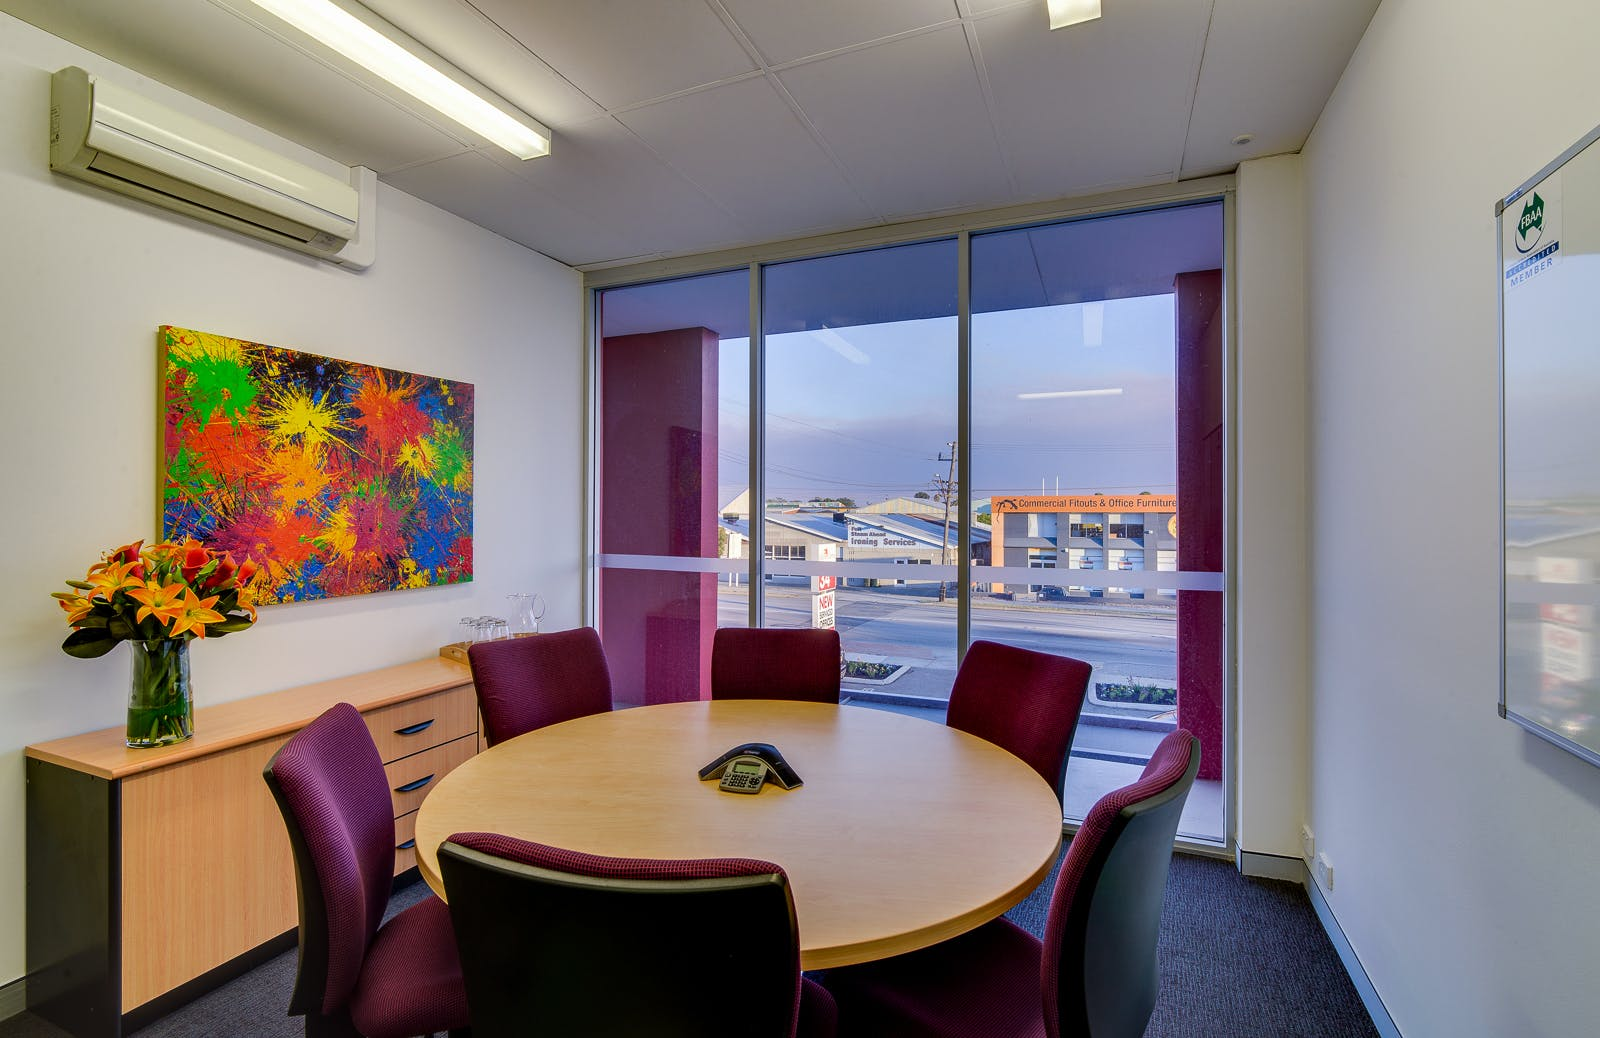 Office 10, serviced office at The Aspire Centre, image 7